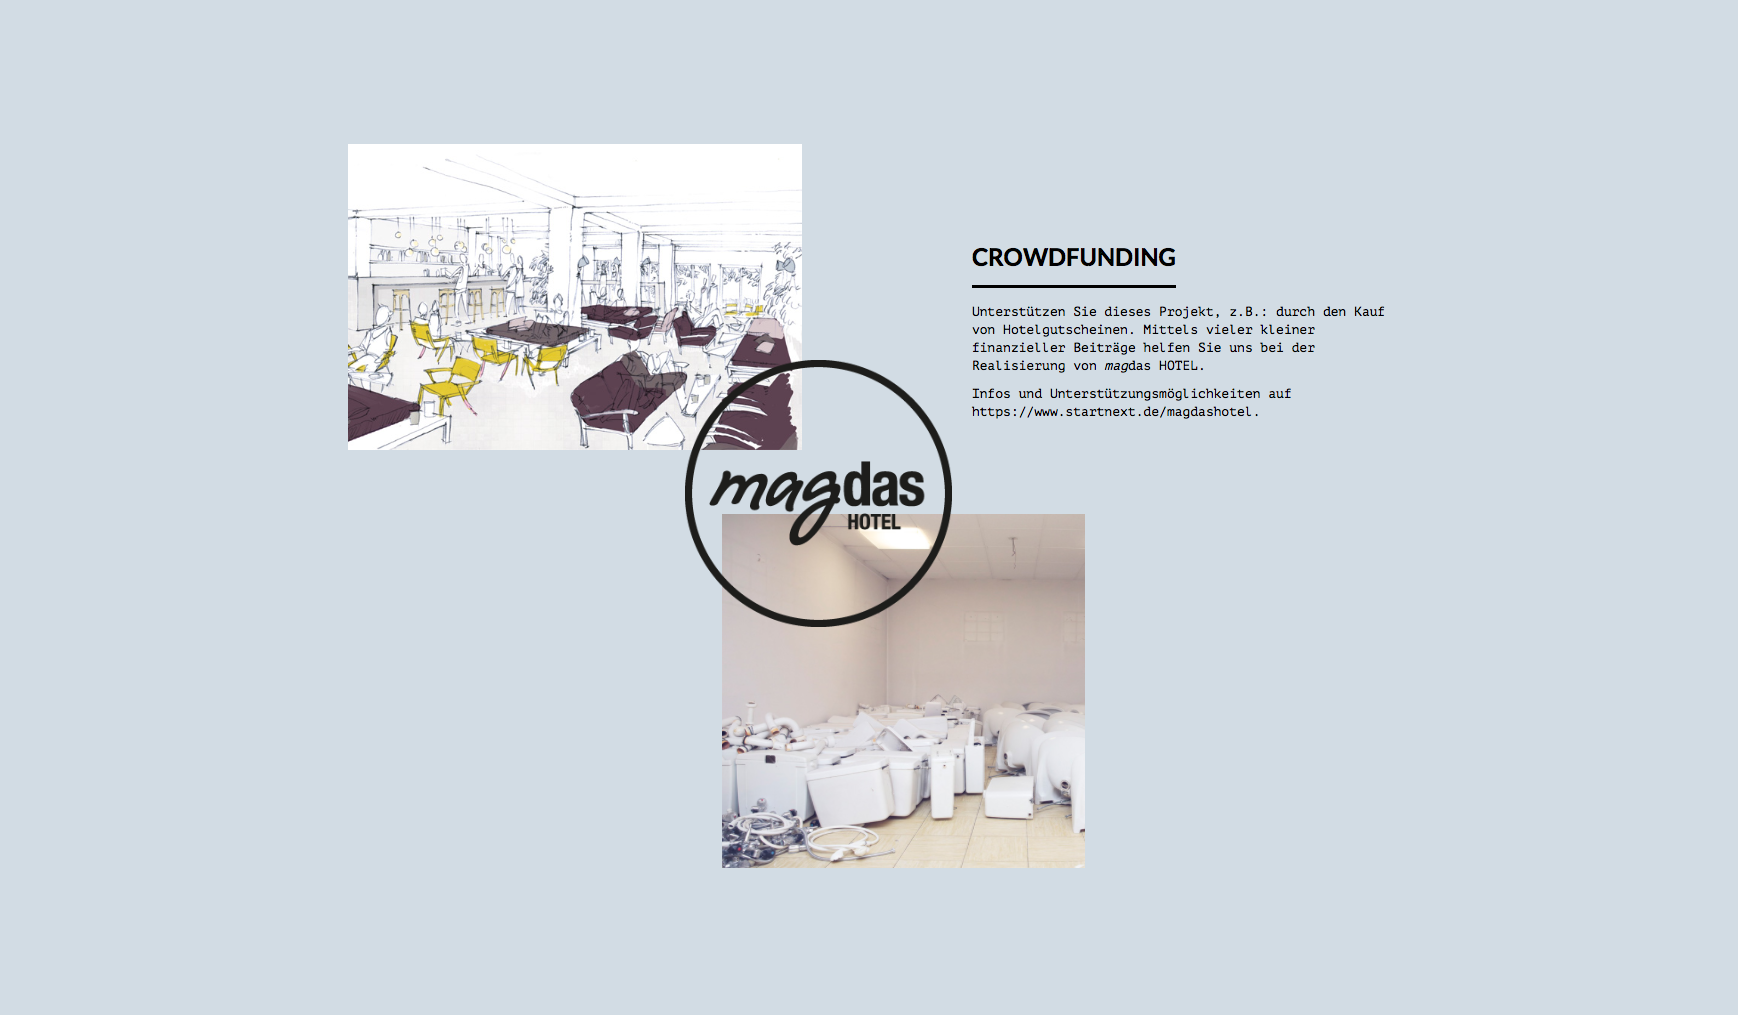 ))accente - magdas Hotel - Crowdfunding